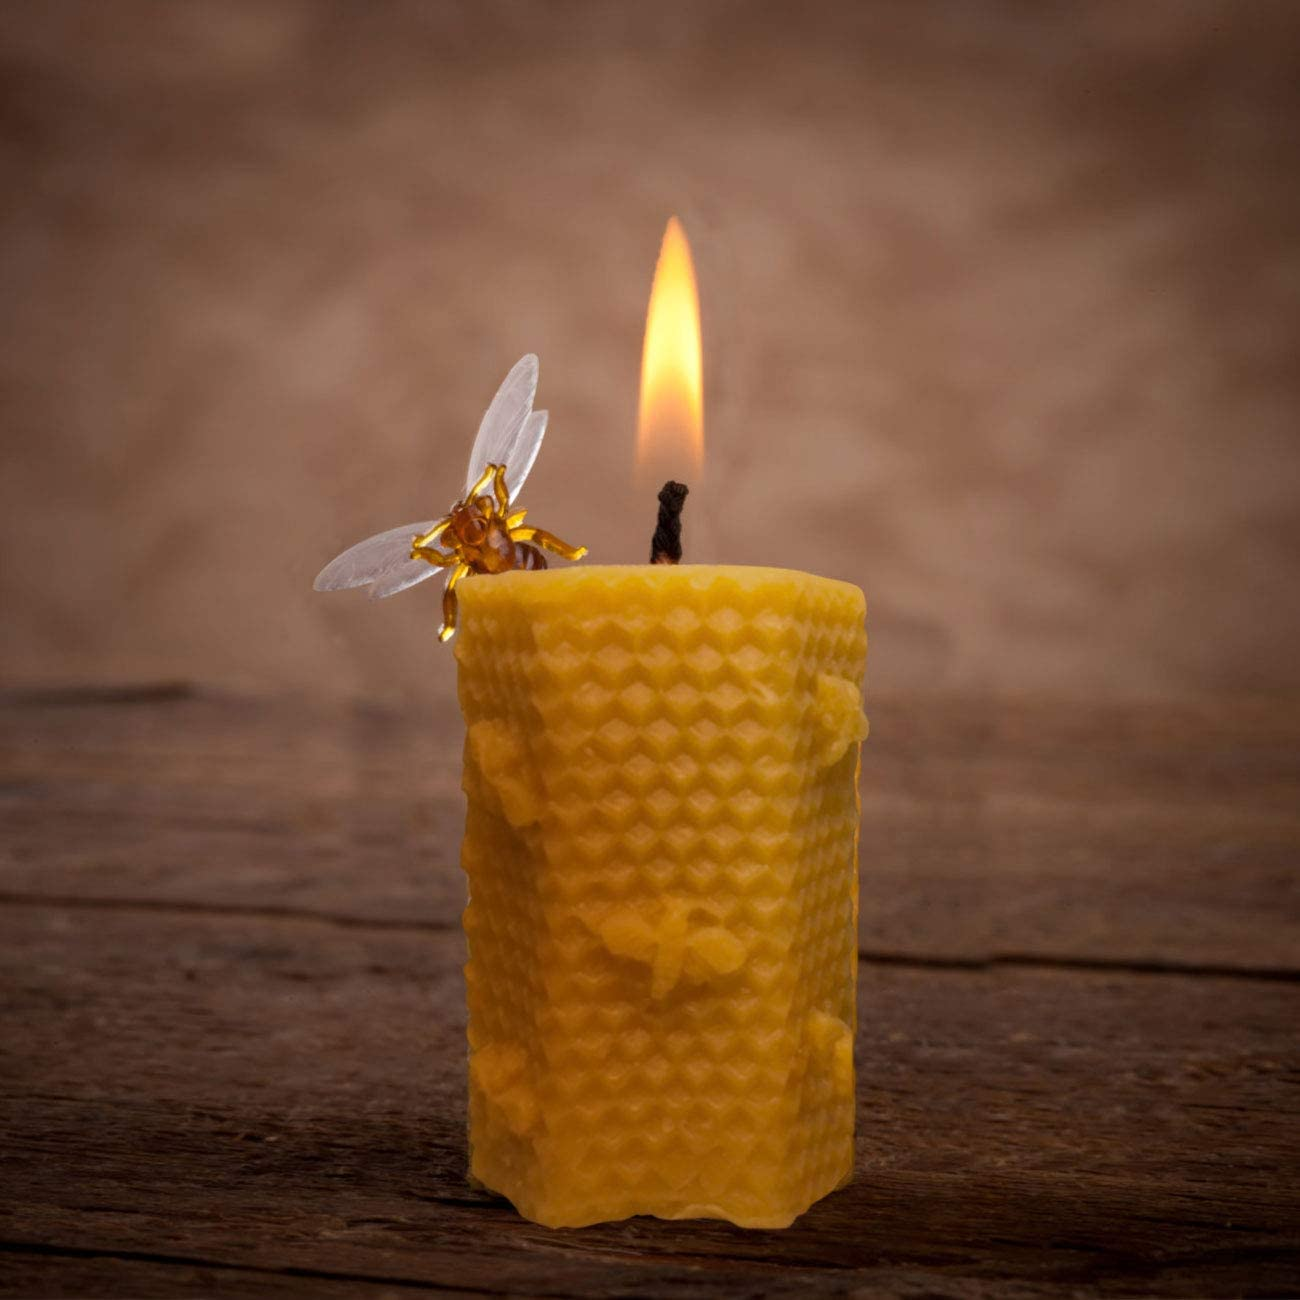 Dettelin 2Pcs Candle Silicone Mold with Wick Holder Beeswax Candle Soap Handmade Silicone Mold Bee Honeycomb Cake Candle Molds Kit